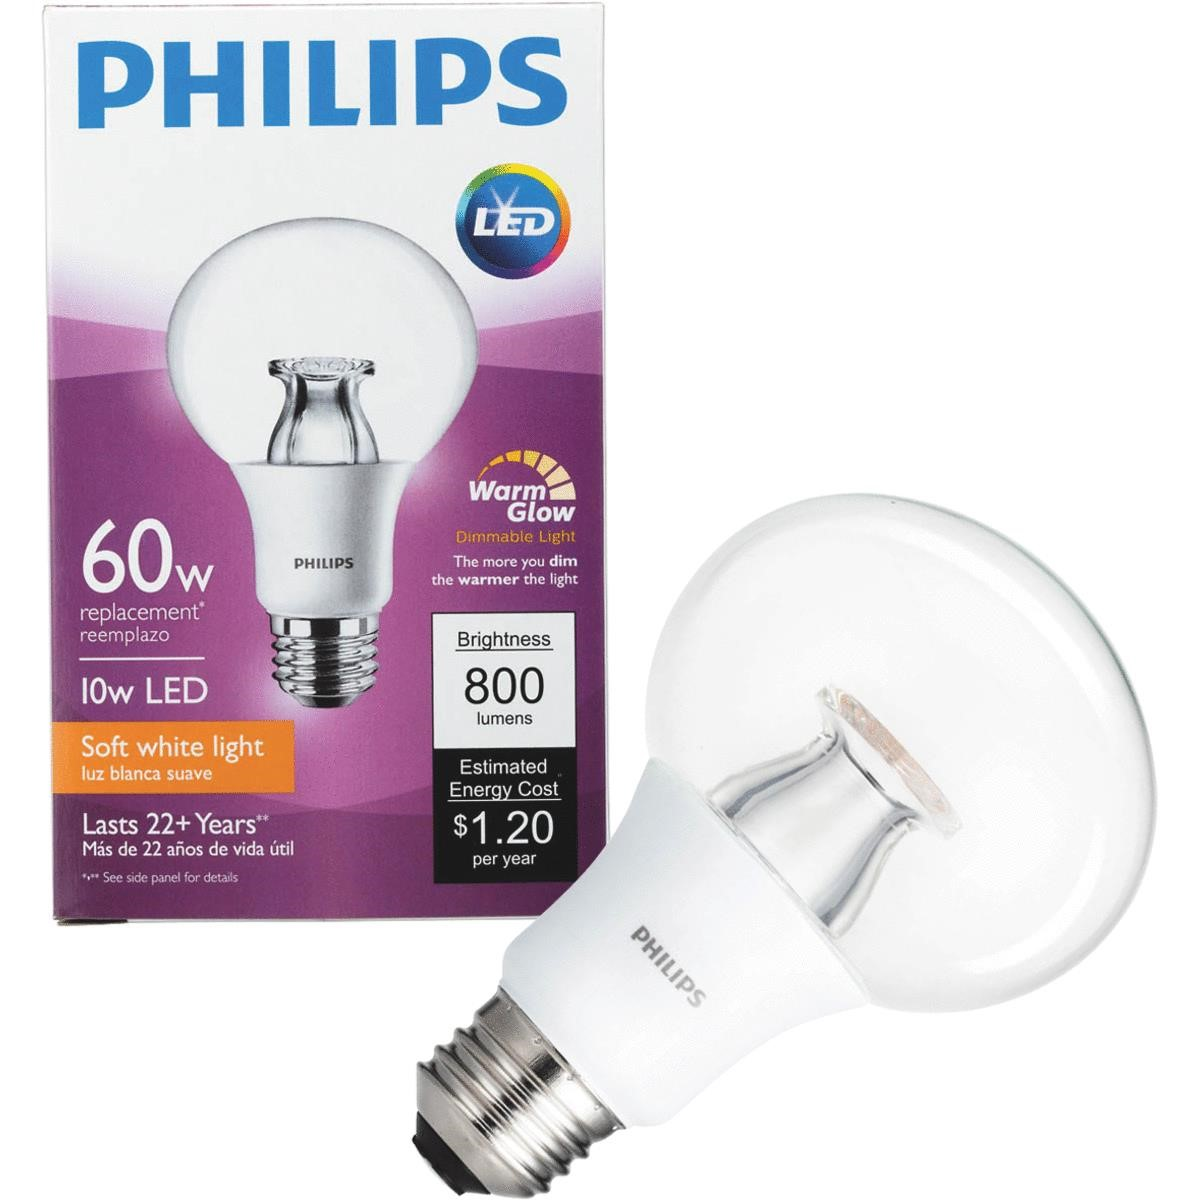 Philips LED Dimmable Light Bulb, G25, Soft White with Warm Glow, 60 WE, Medium Base